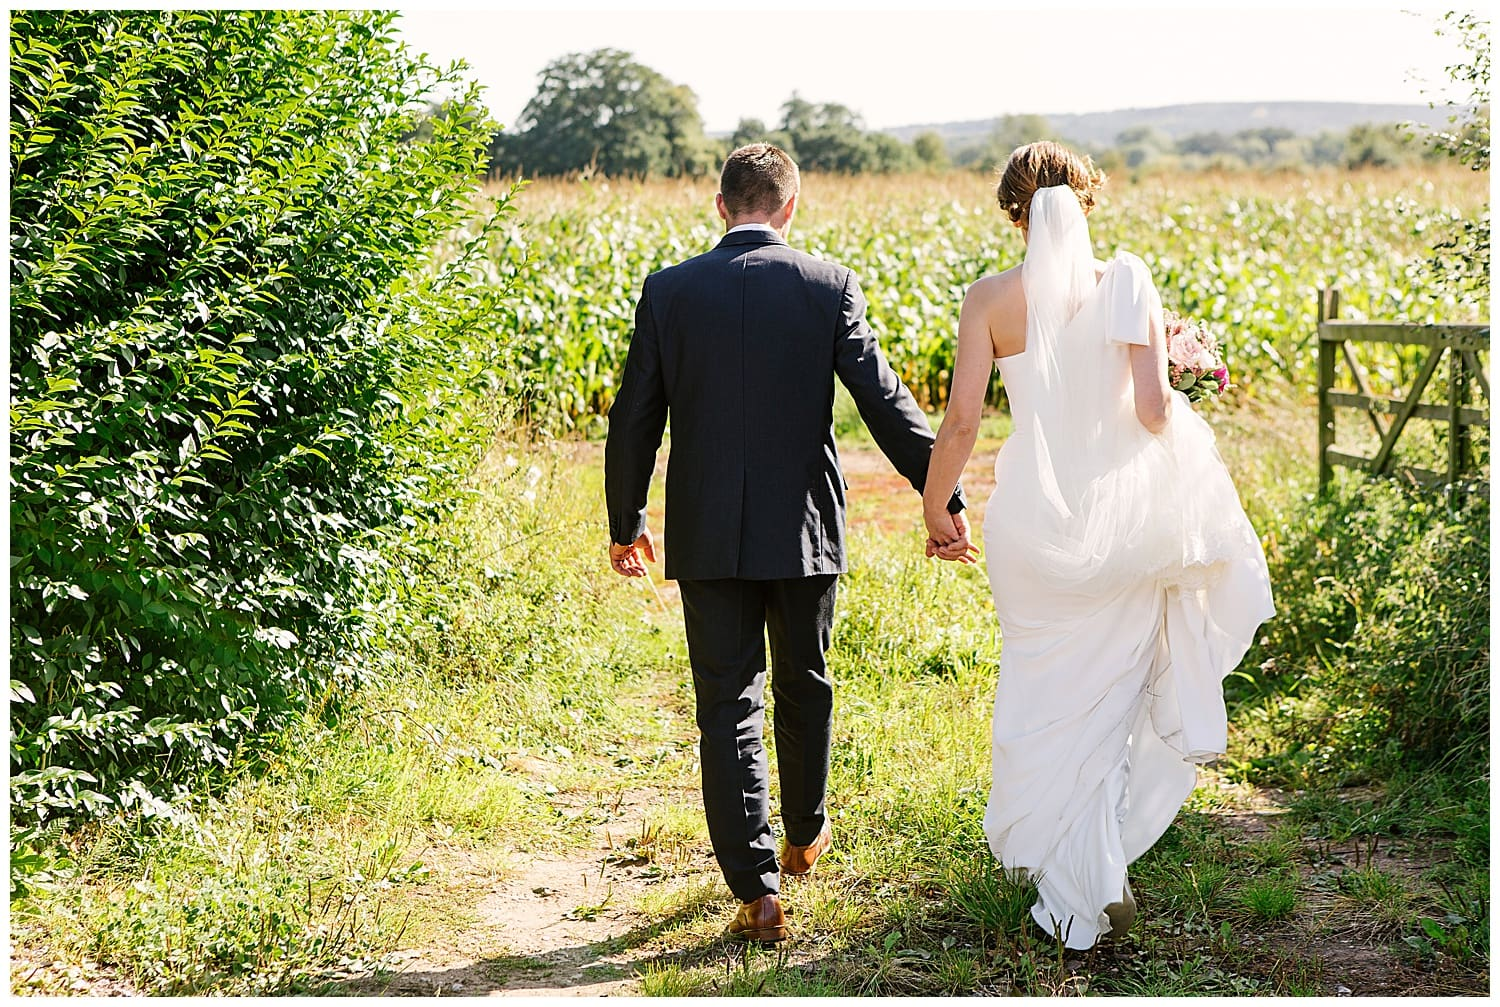 Newly married couple holding hands walk into cob field in rural Staffordshire